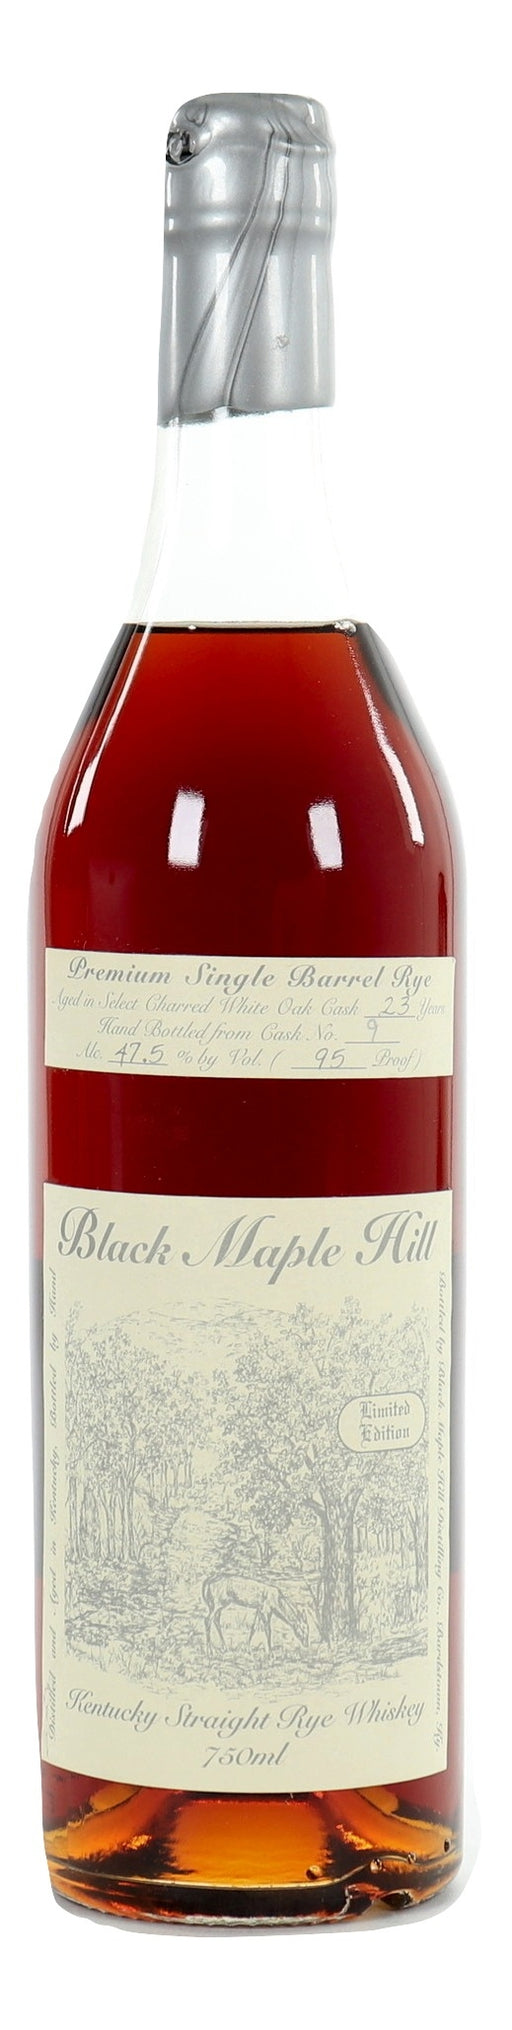 Black Maple Hill 23 Year Old Single Barrel Rye - Cask 9 For Sale - NativeSpiritsOnline